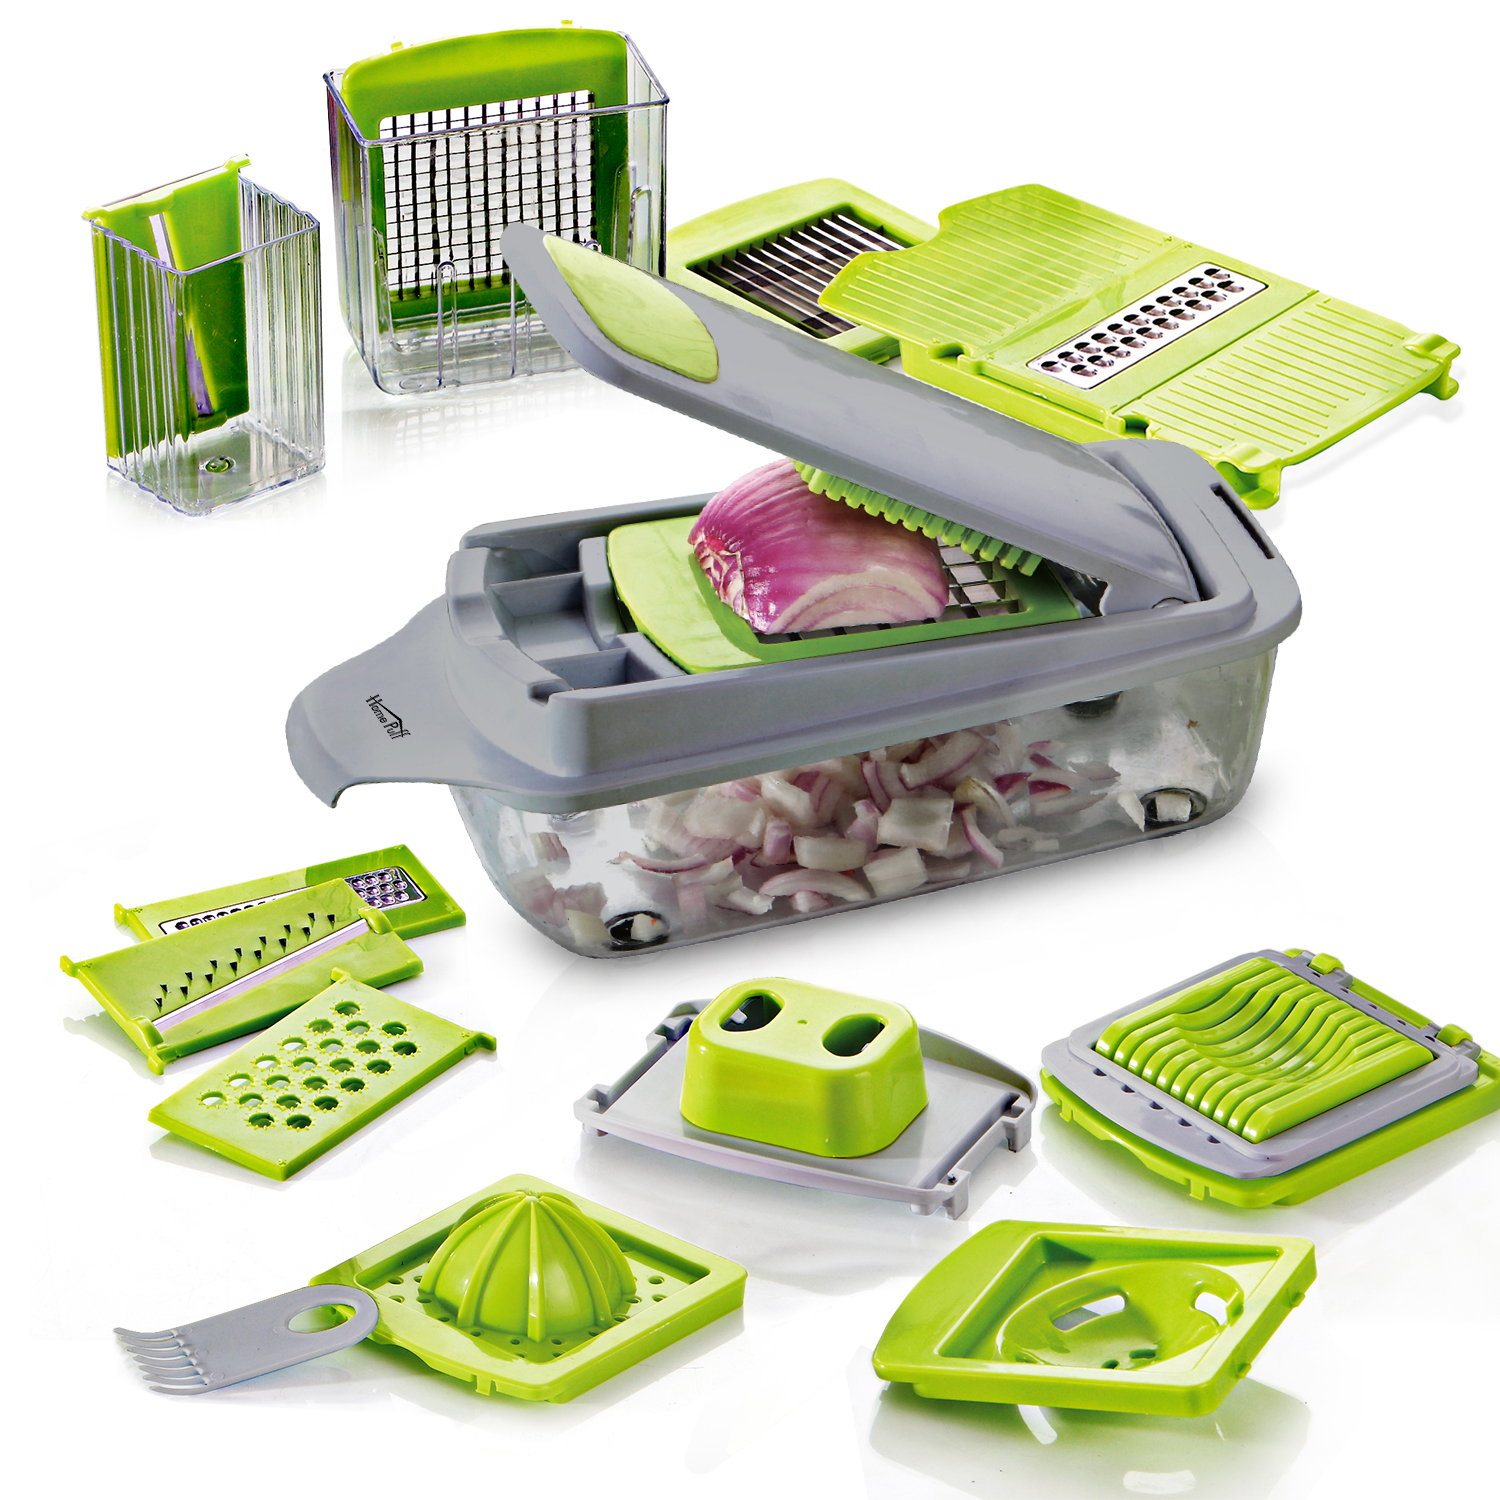 HomePuff Nicer Dicer Plus & Julienne Slicer